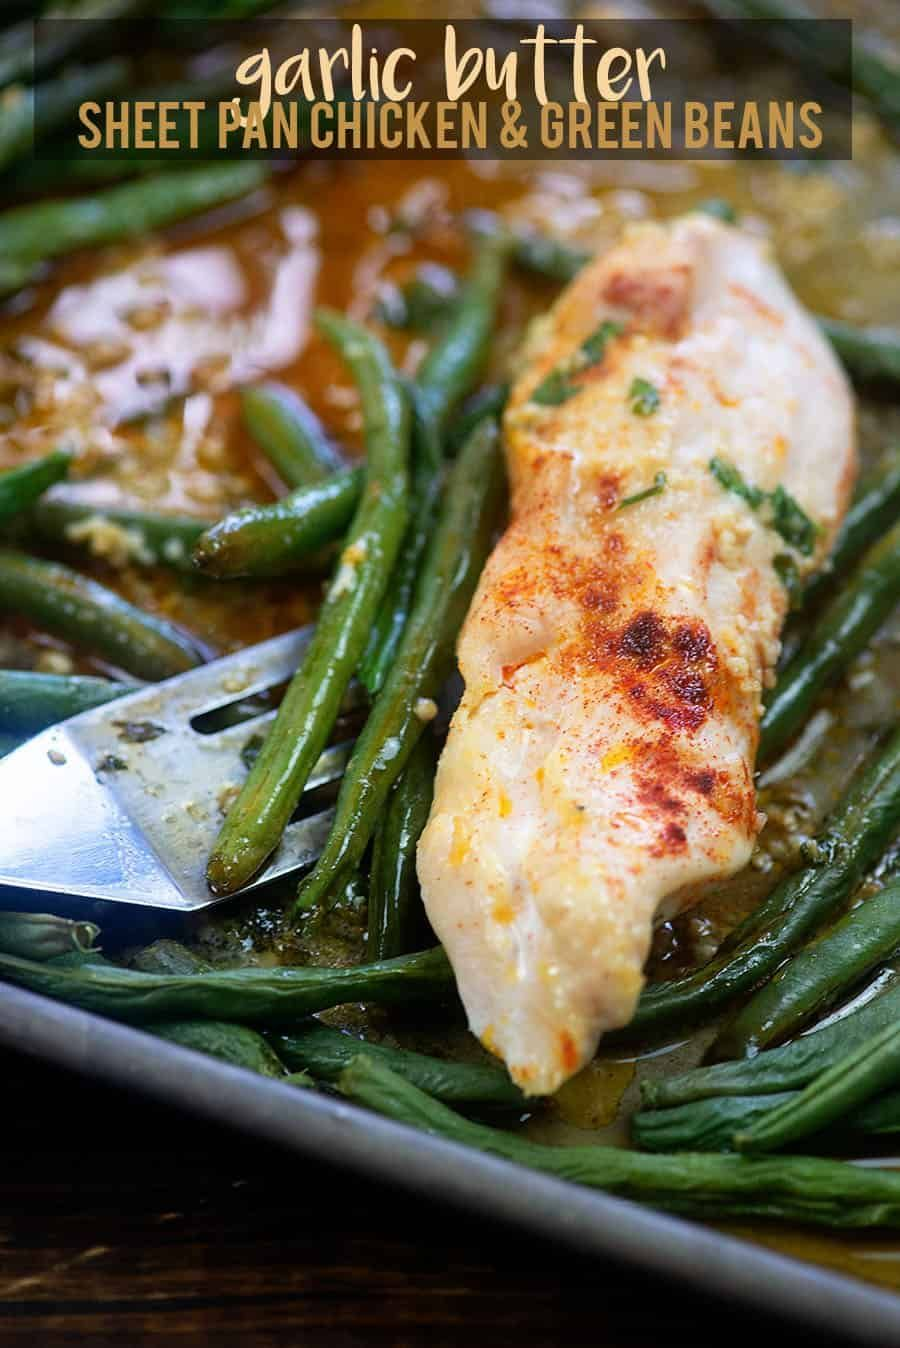 Sheet Pan Garlic Butter Chicken and Green Beans!! Easiest dinner ever and it's low carb too!